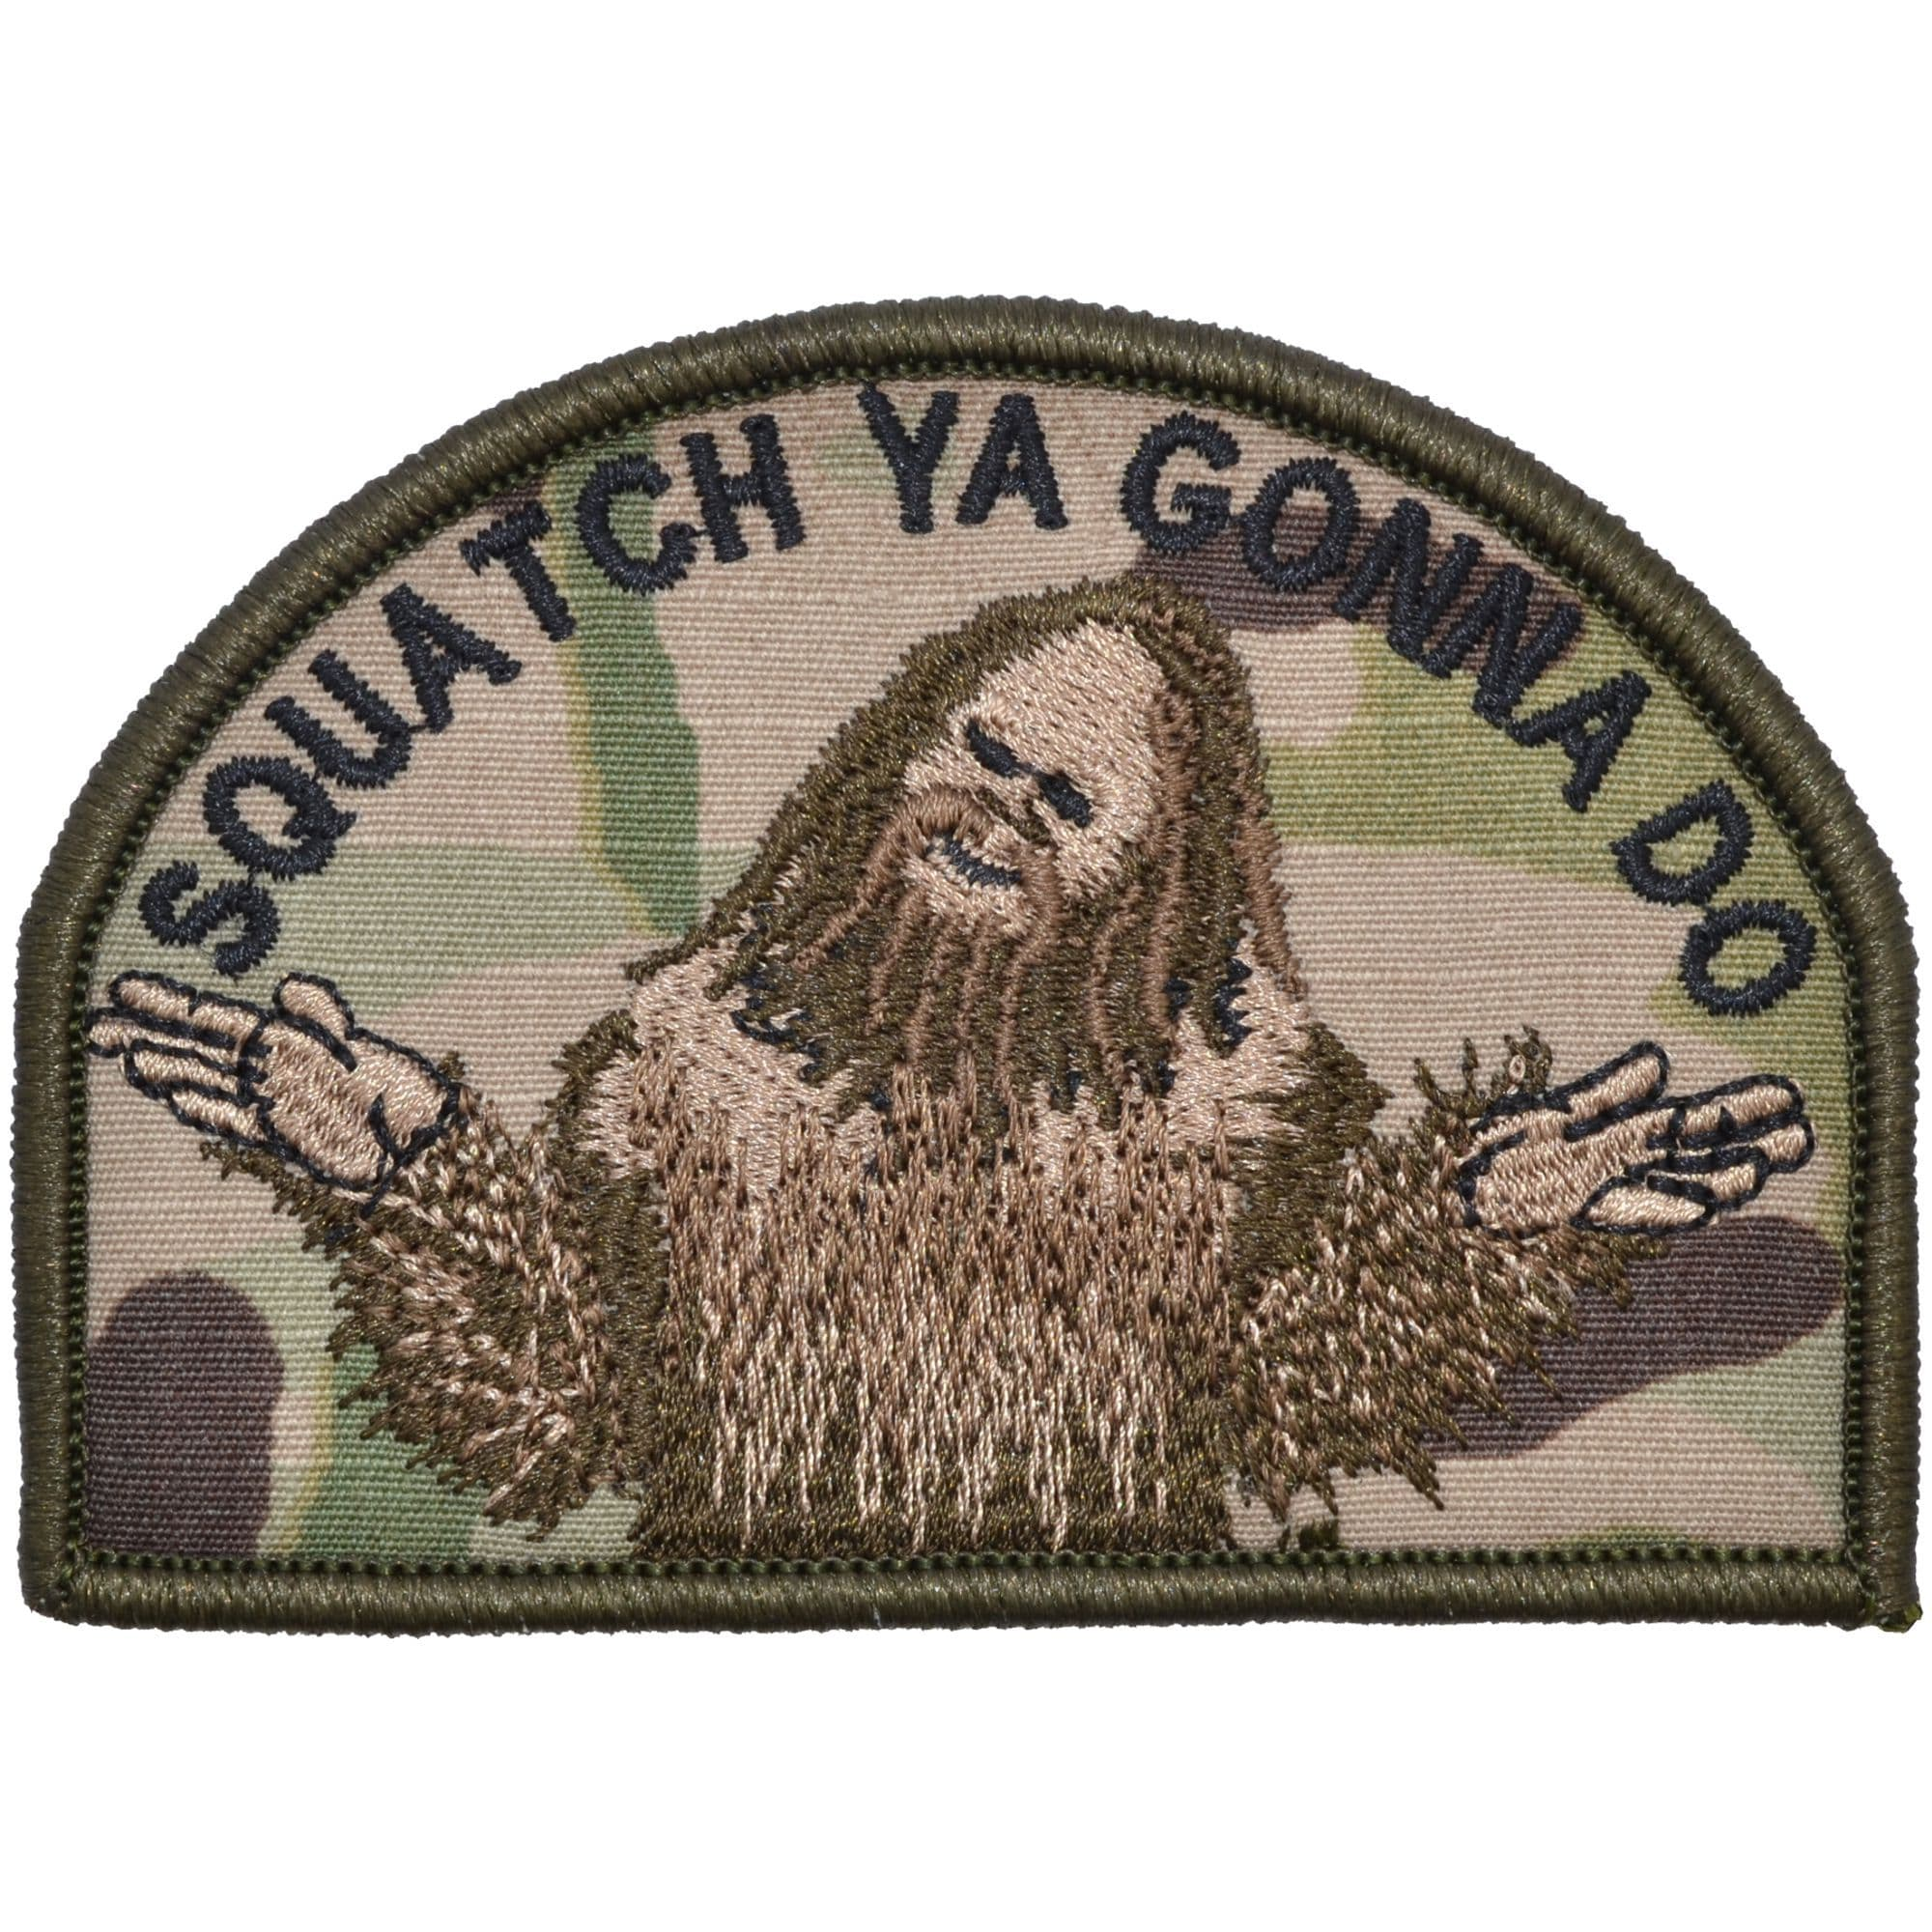 Tactical Gear Junkie Patches MultiCam Squatch Ya Gonna Do - 2.75x4 Patch